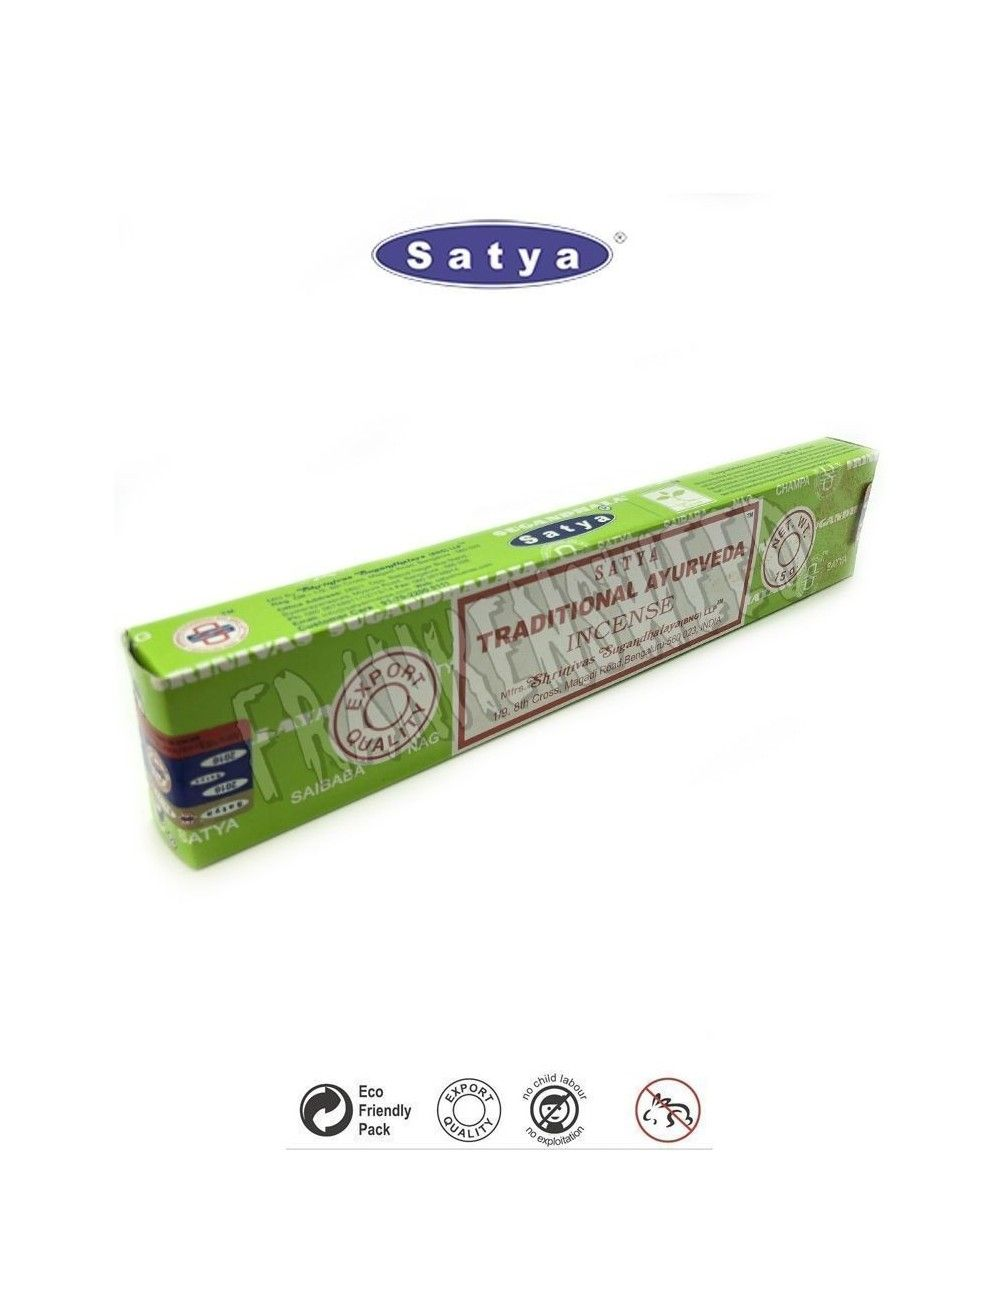 TRADITIONAL AYURVEDA Satya Sai Baba Incense Sticks